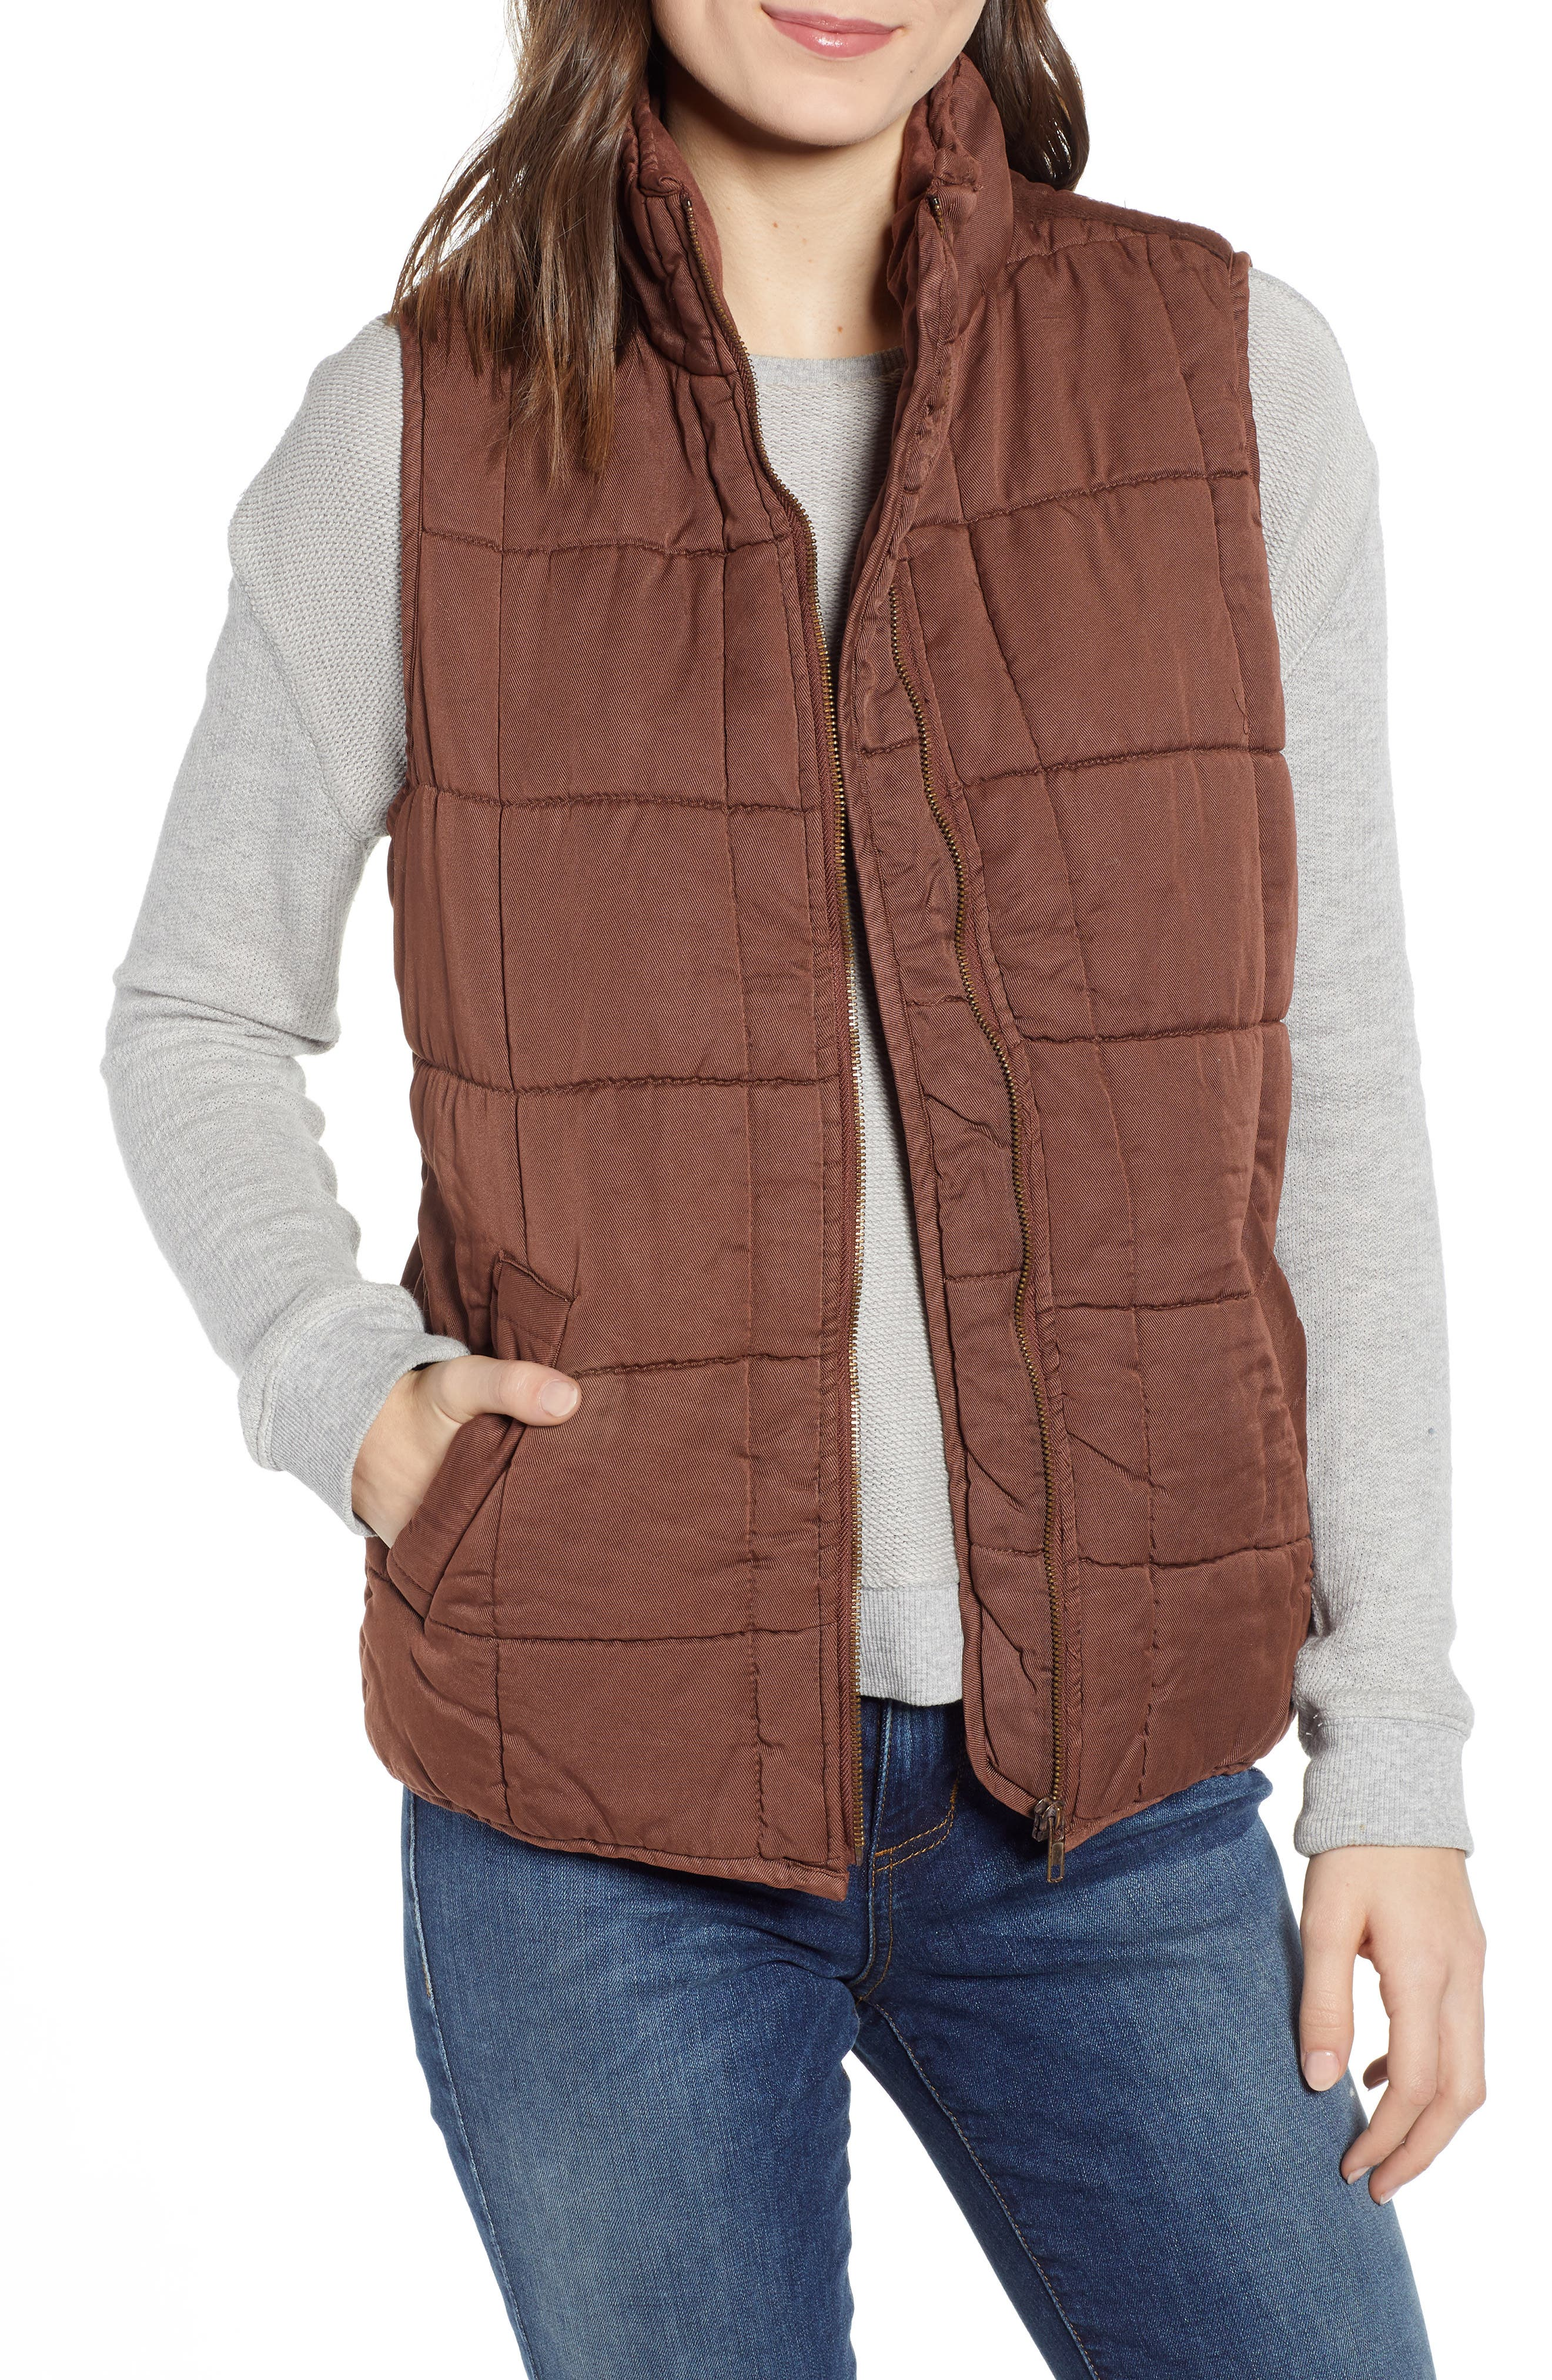 Thread & Supply Kensington Quilted Vest, Brown